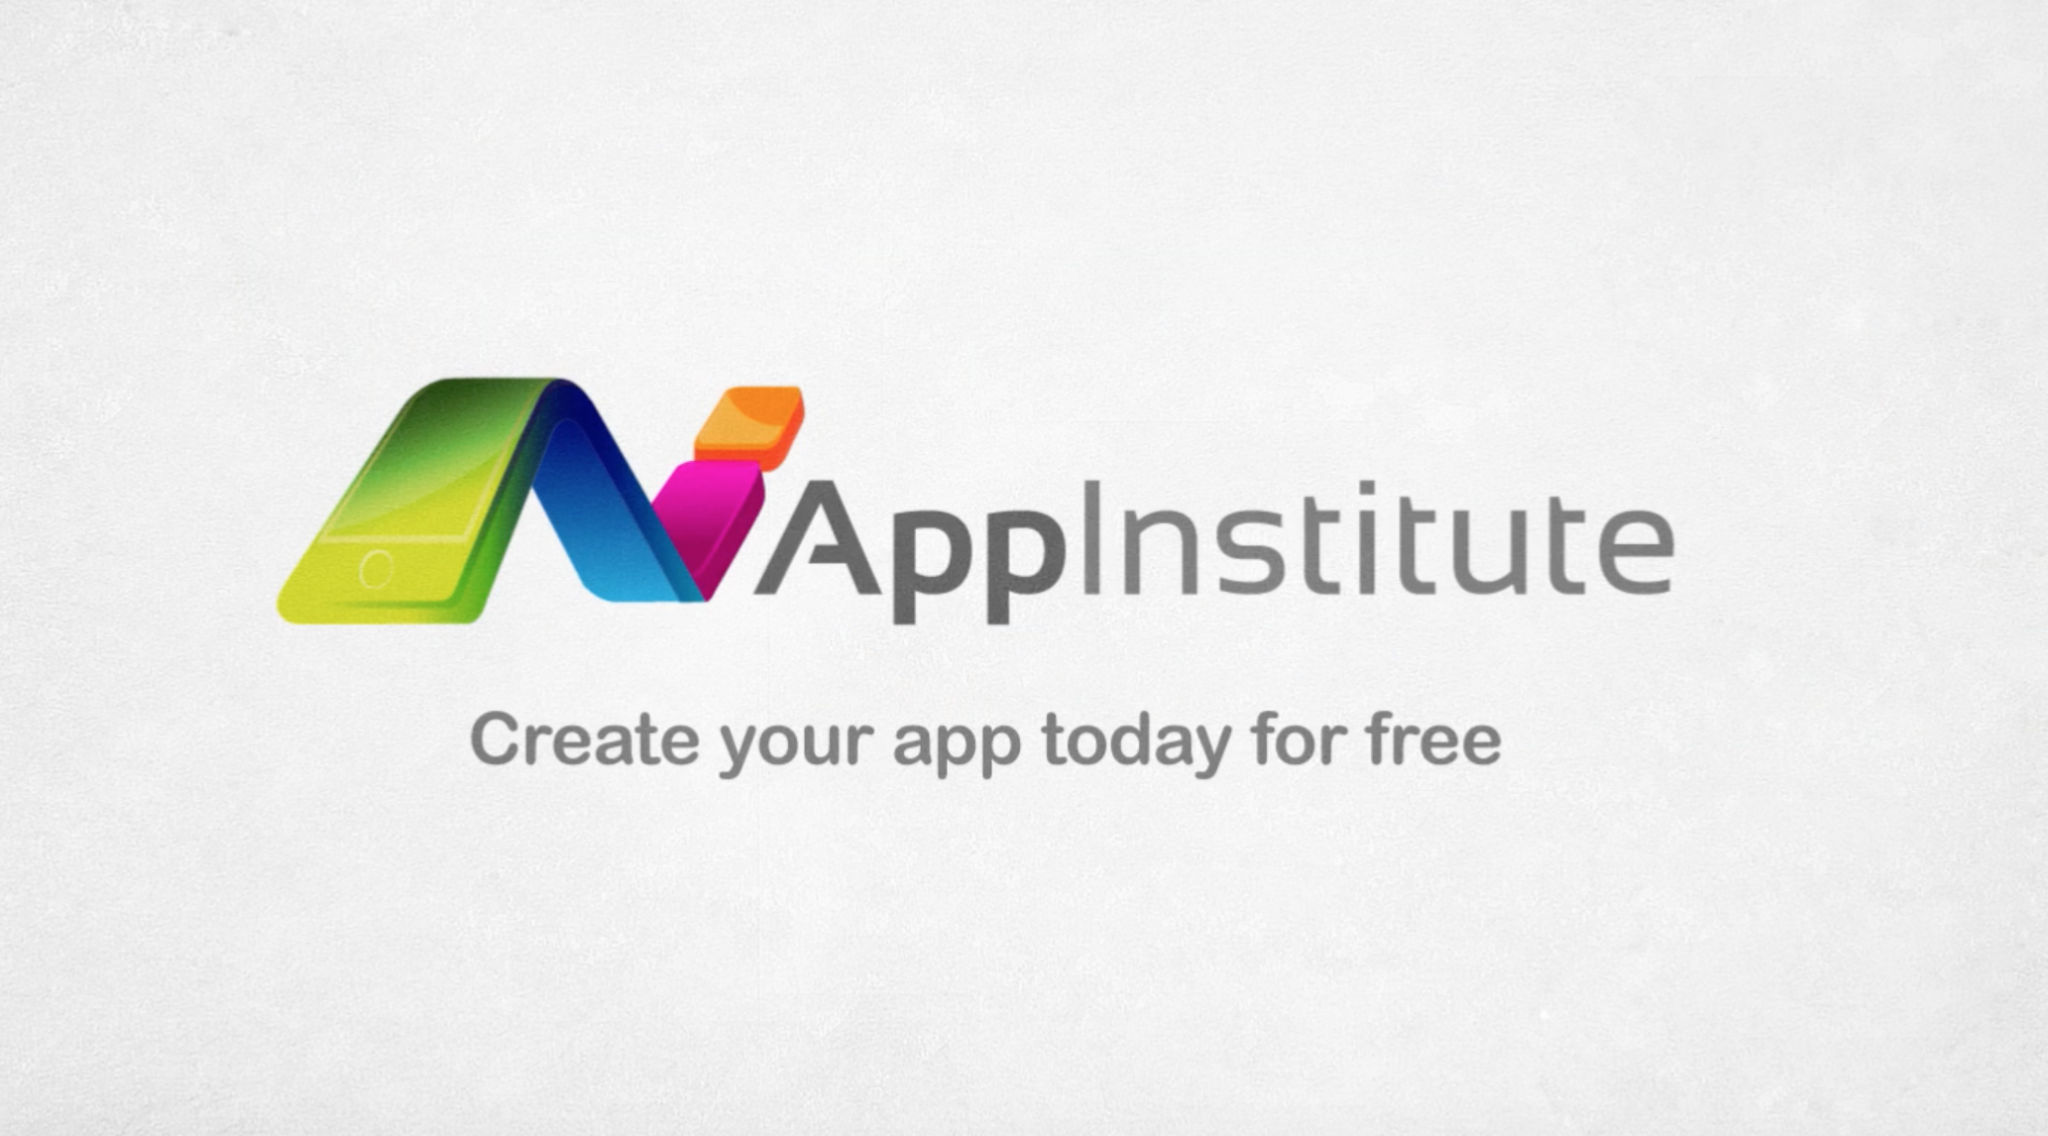 App Builder by App Institute